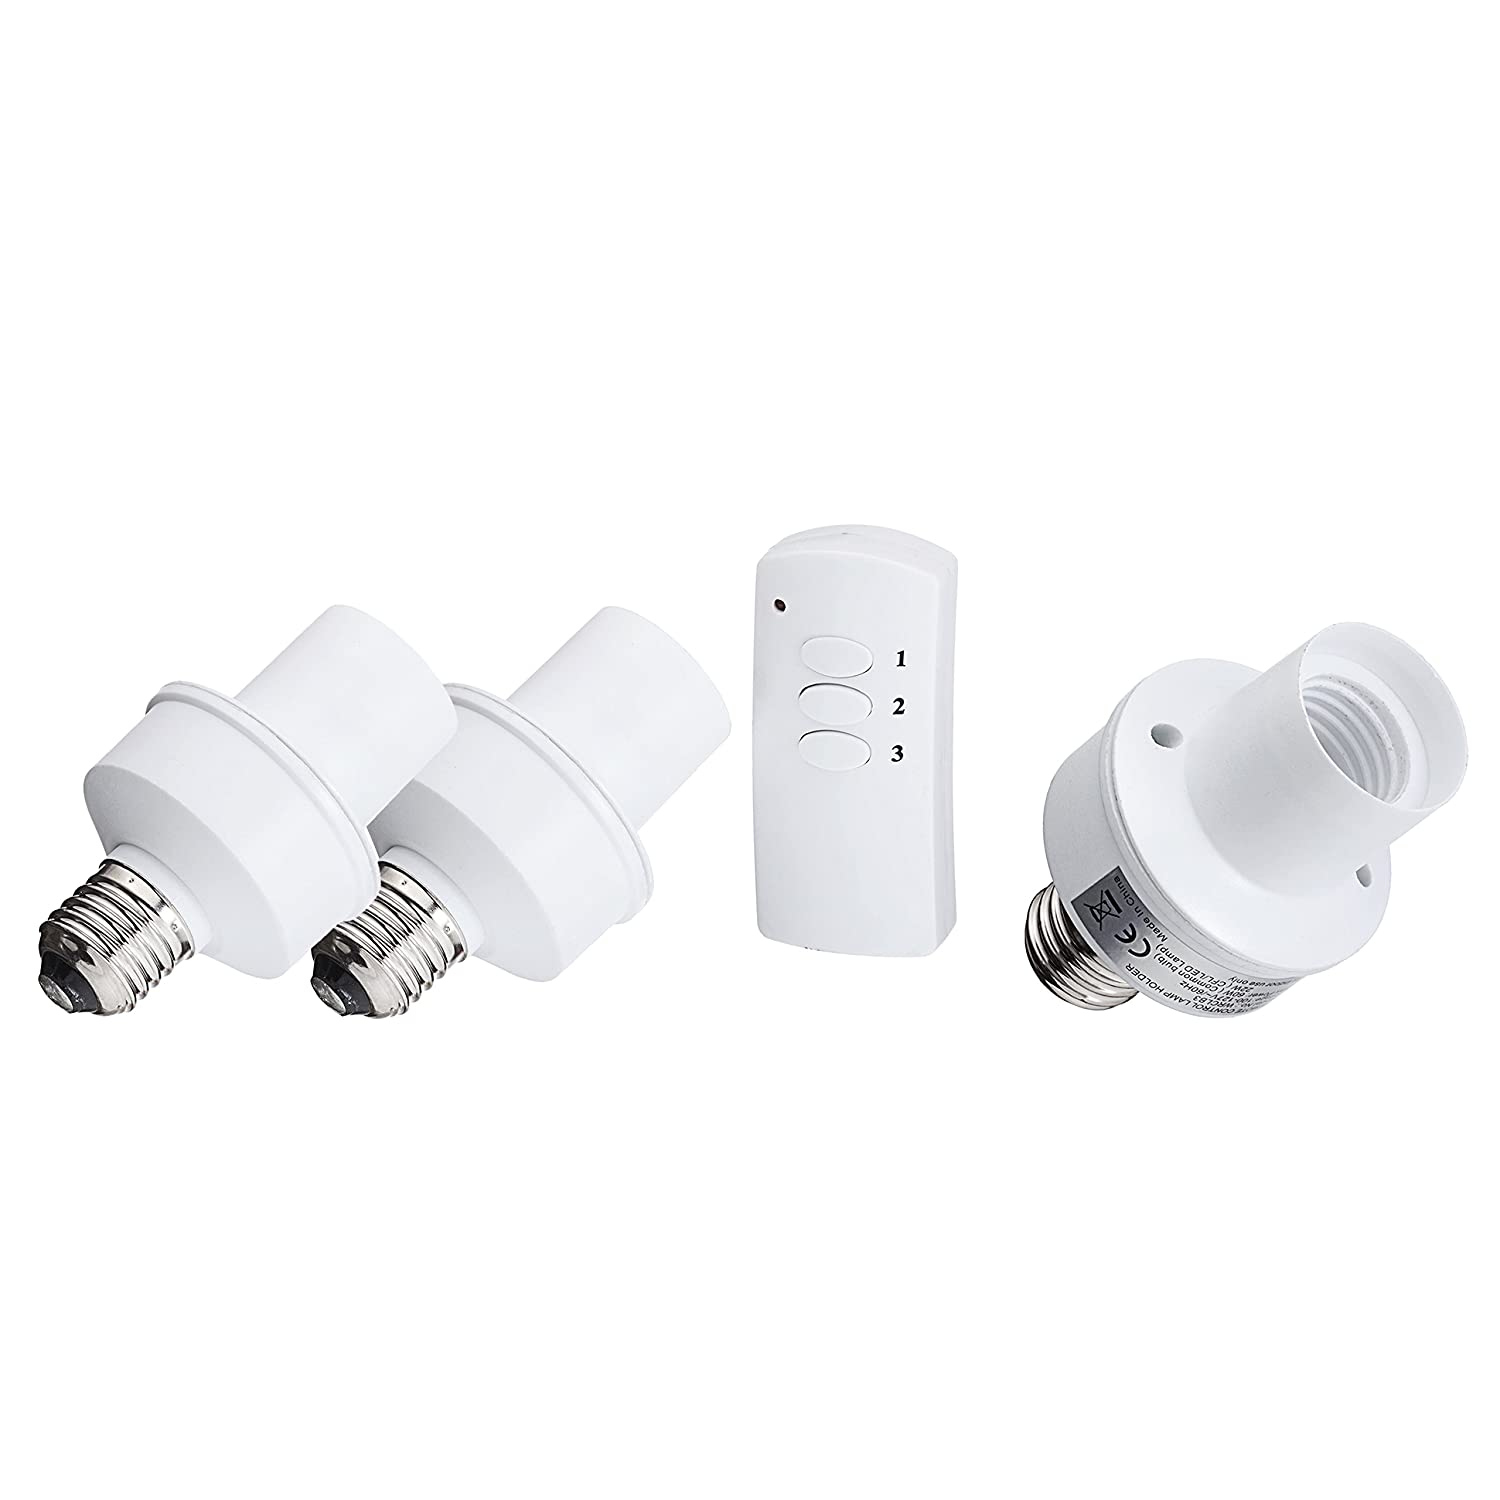 Led Light Bulbs With Remote: LED Concepts® Remote Control Wireless Light Bulb Socket Cap Switch for Lamps  Bulbs and Fixtures (Set of 3 Sockets) - - Amazon.com,Lighting